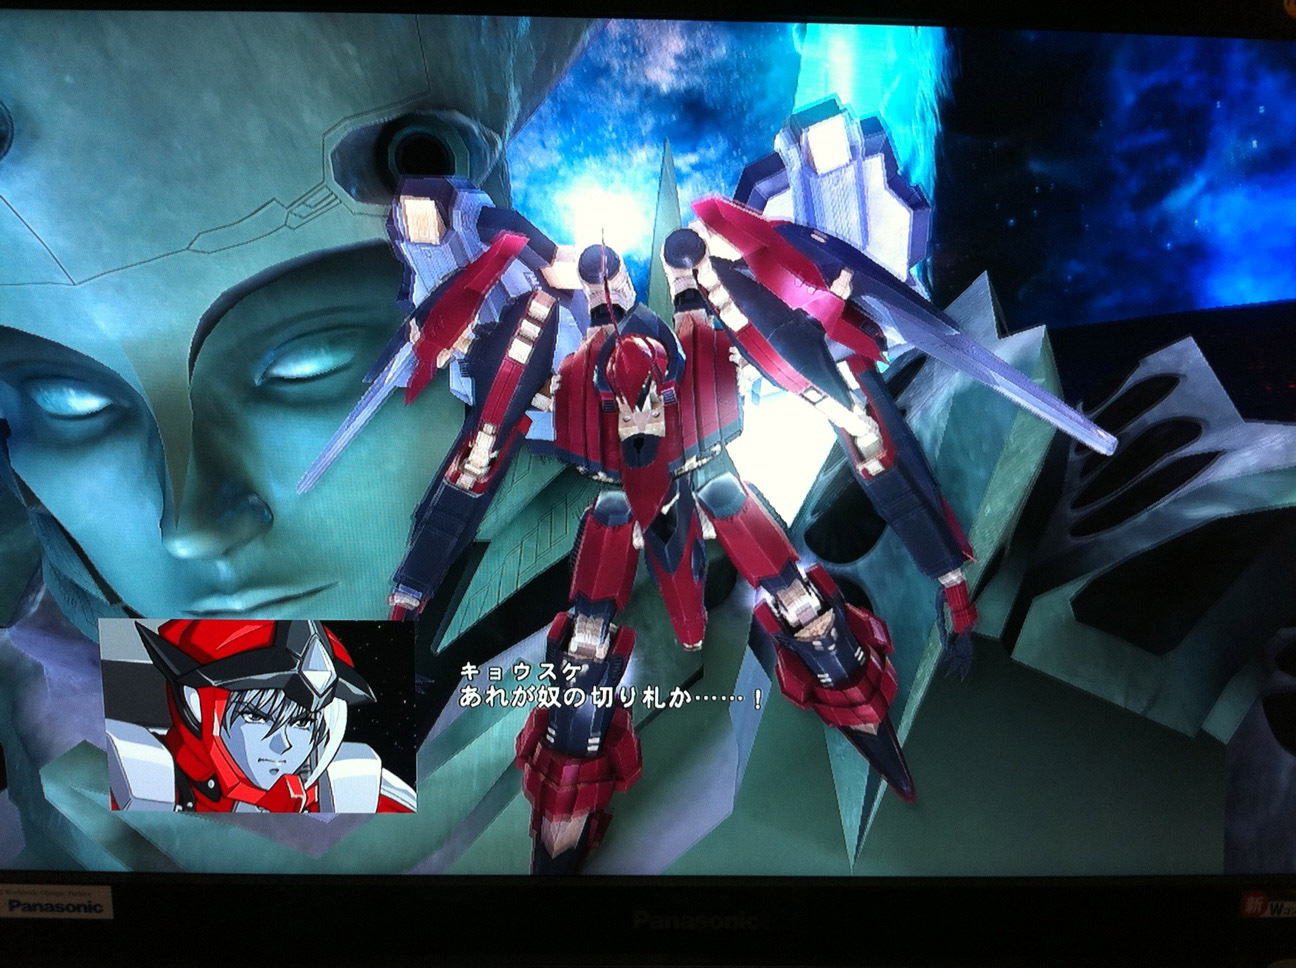 9 Ball Armored Core Game Series Photo 18078028 Fanpop